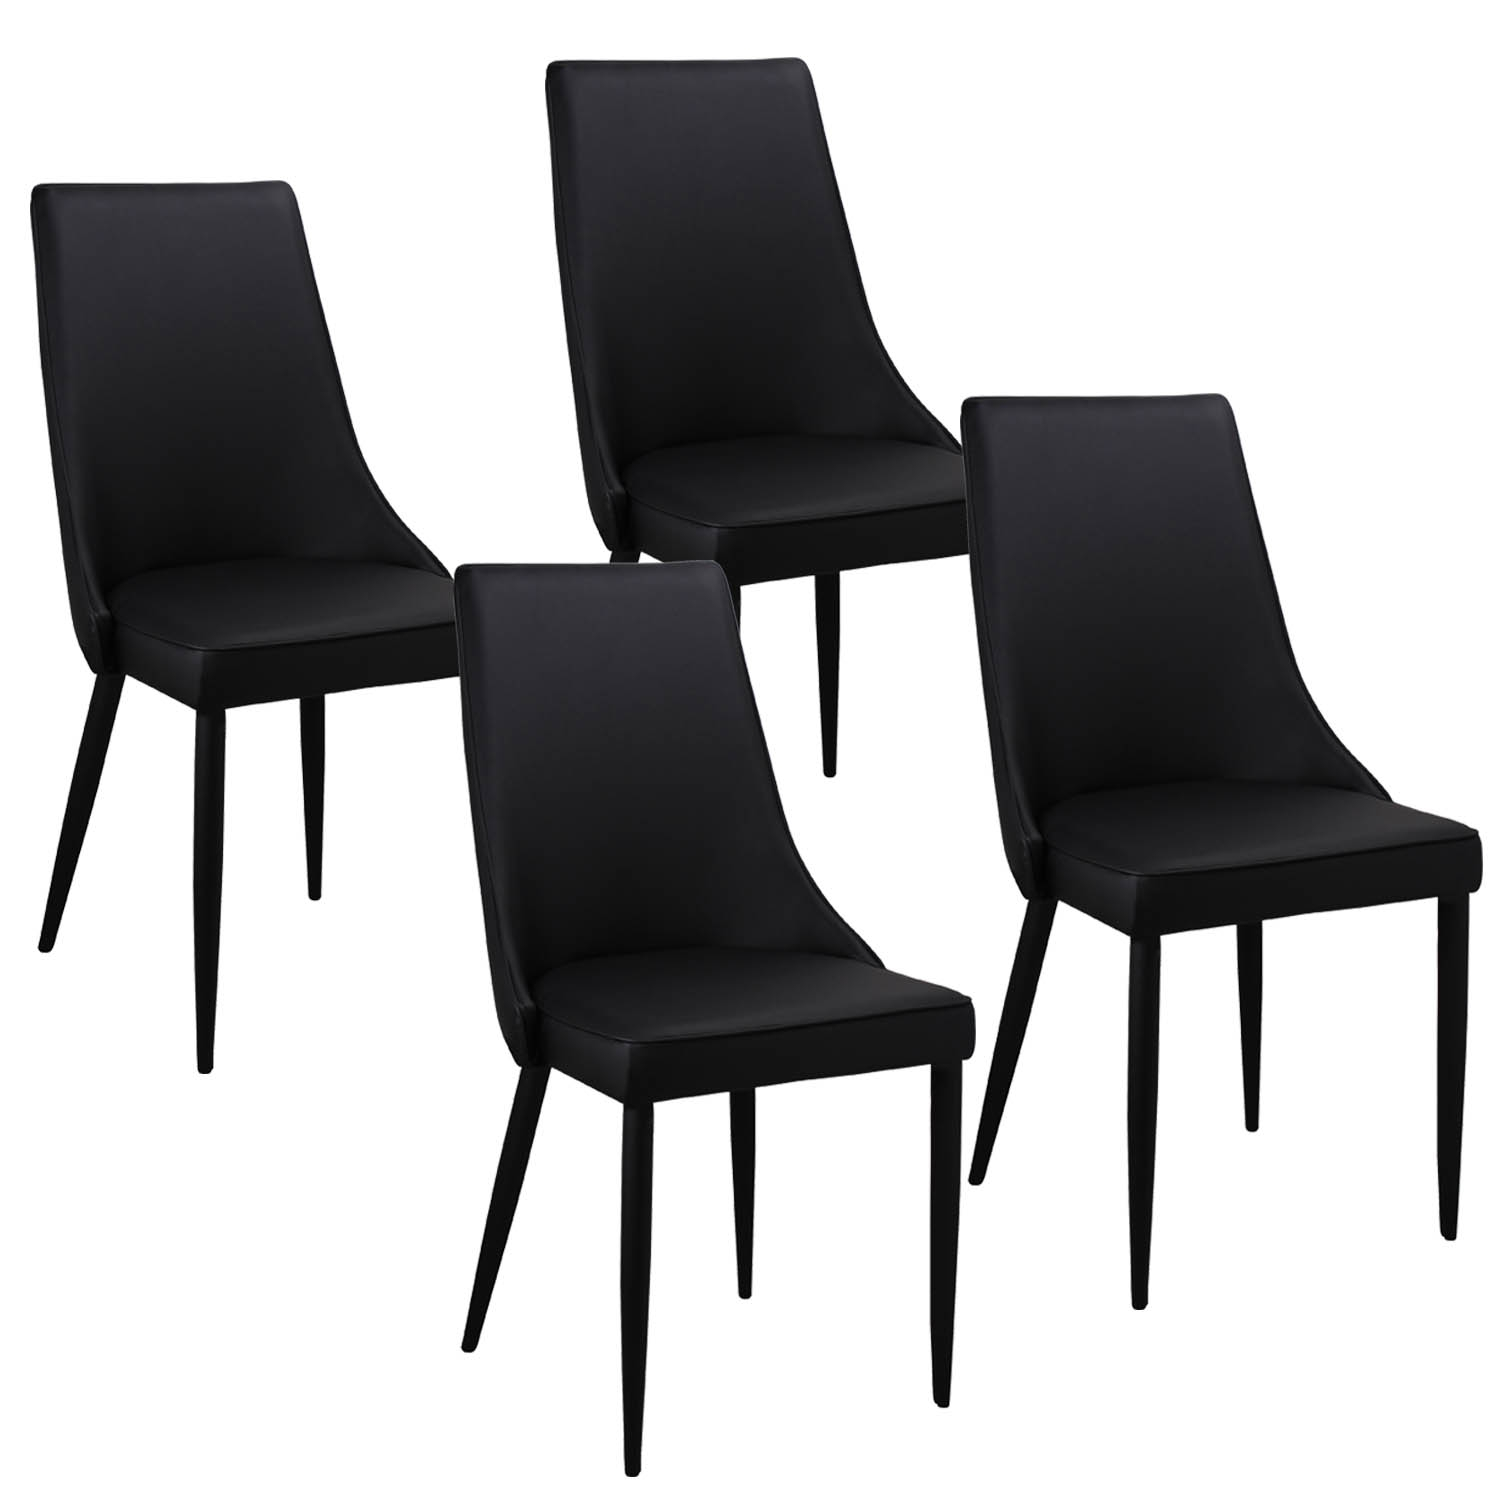 Deco in paris lot de 4 chaises noir avev avev gris noir x4 for Lot 4 chaises